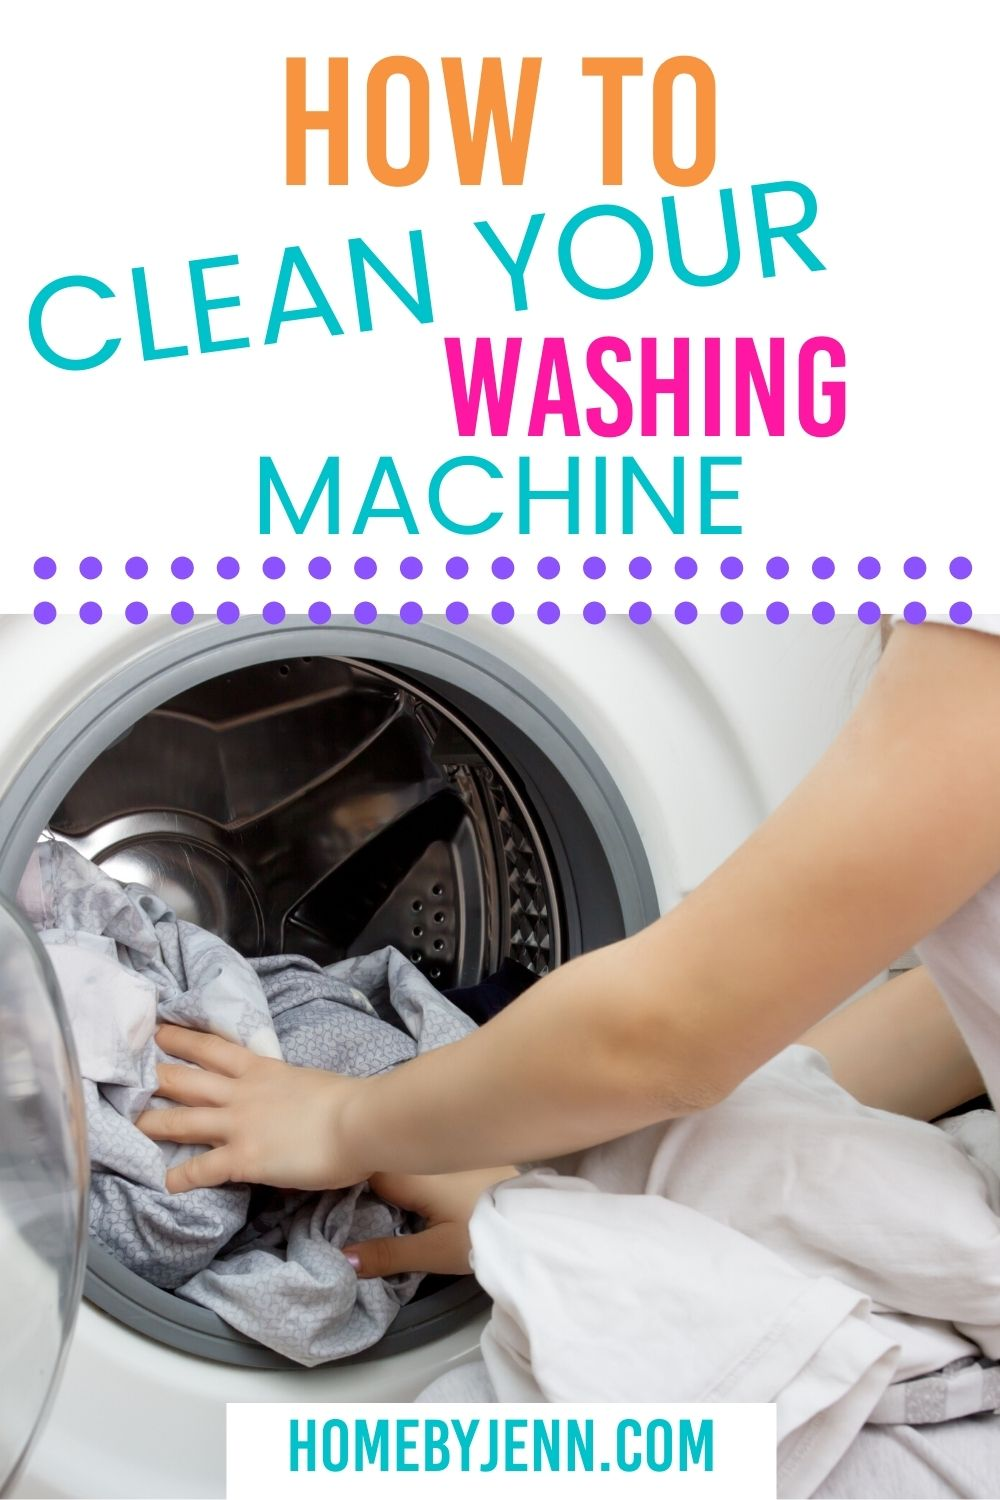 Cleaning your washing machine is important to keep your washing machine smelling fresh and guaranteeing your clothes coming out clean.  Learn how to clean a washing machine. #howtocleanwashingmachine #howtocleanyourwashingmachine #deepcleaninghome #cleaningtips #cleaninghacks #cleaningtipsforthehome #cleaningtipsandtricks #deepcleaninghacks via @homebyjenn